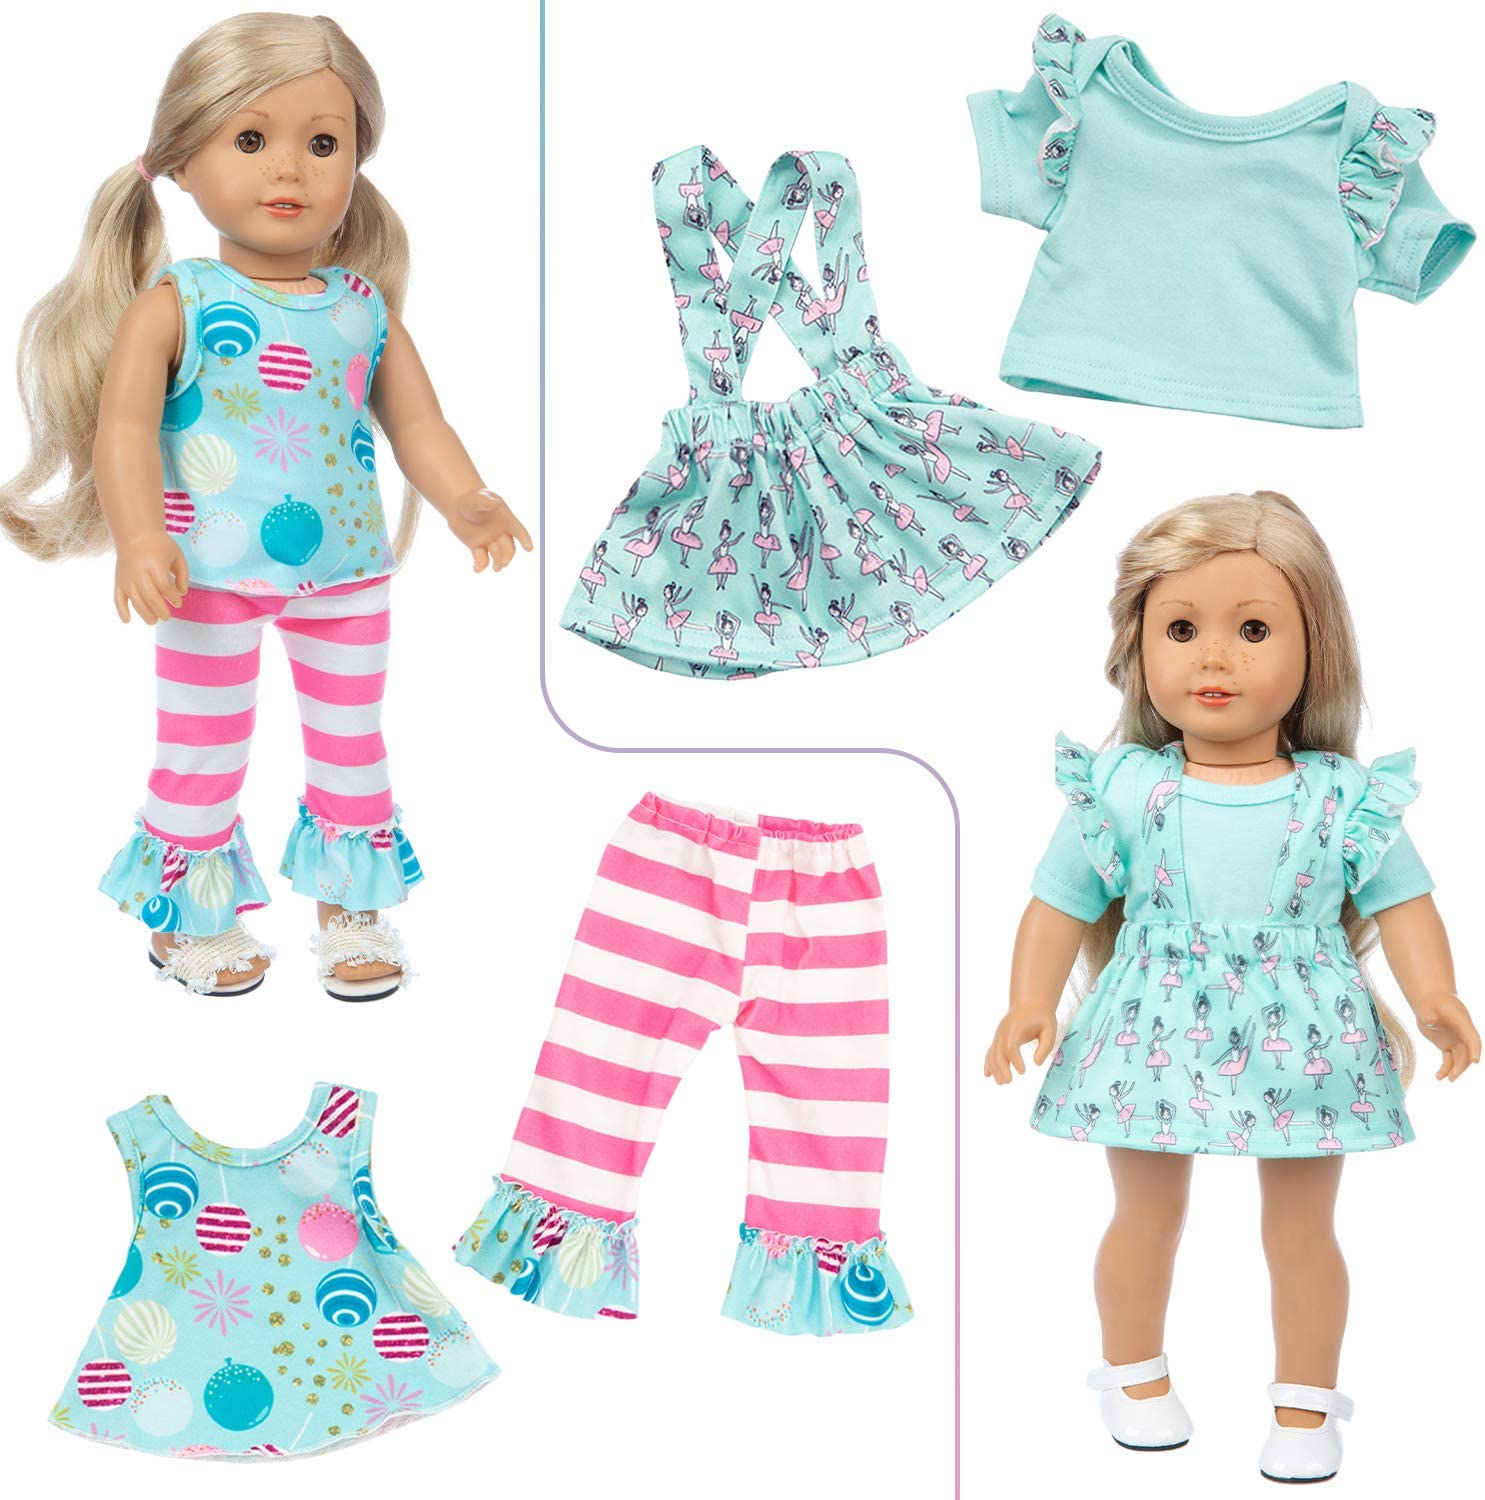 Ecore Fun 10 Sets 18 Inch Doll Clothes Outfits Pajamas Dresses Hair Clips and 2 Pairs of Shoes 1 Handbag for American 18 Inch Girl Doll Clothes and Accessories